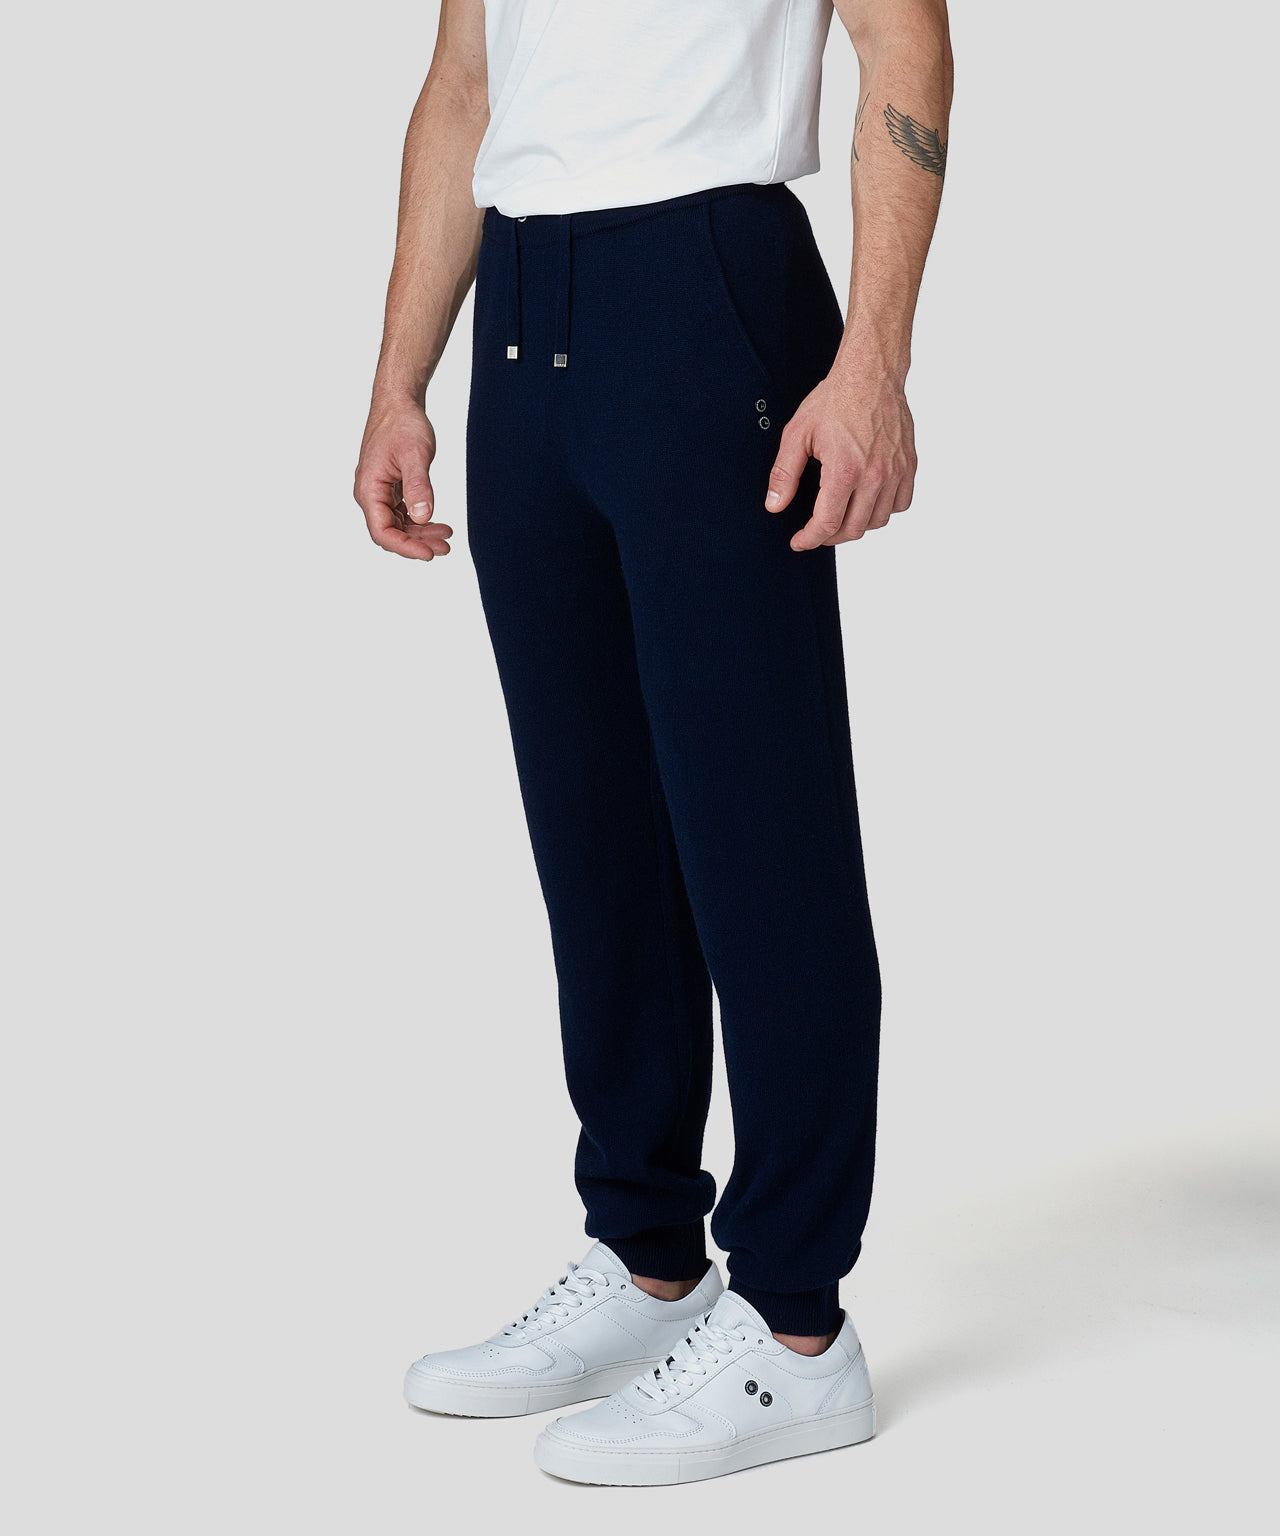 Cashmere Pants - navy